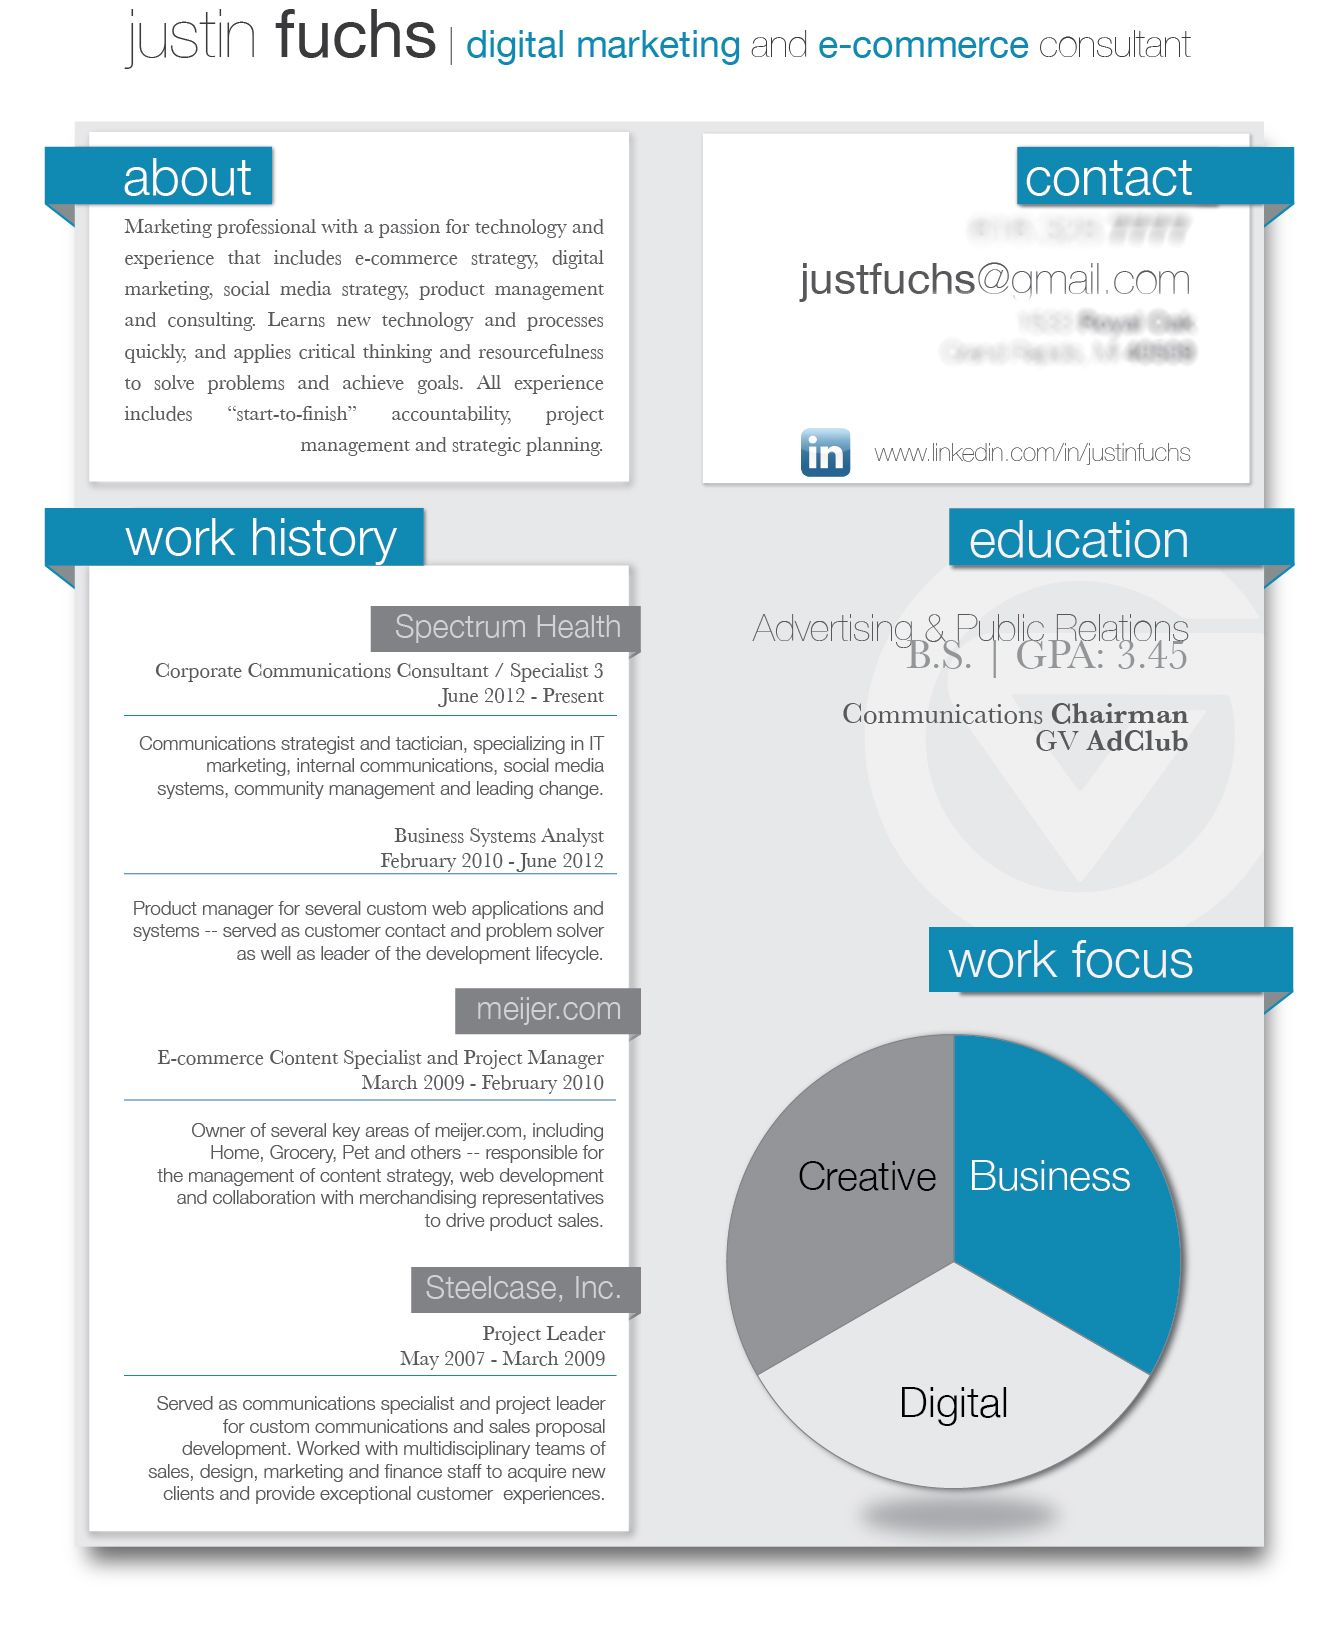 Gut gemocht Sample resume for digital marketing career. BrandNeux.com | Work  MI78